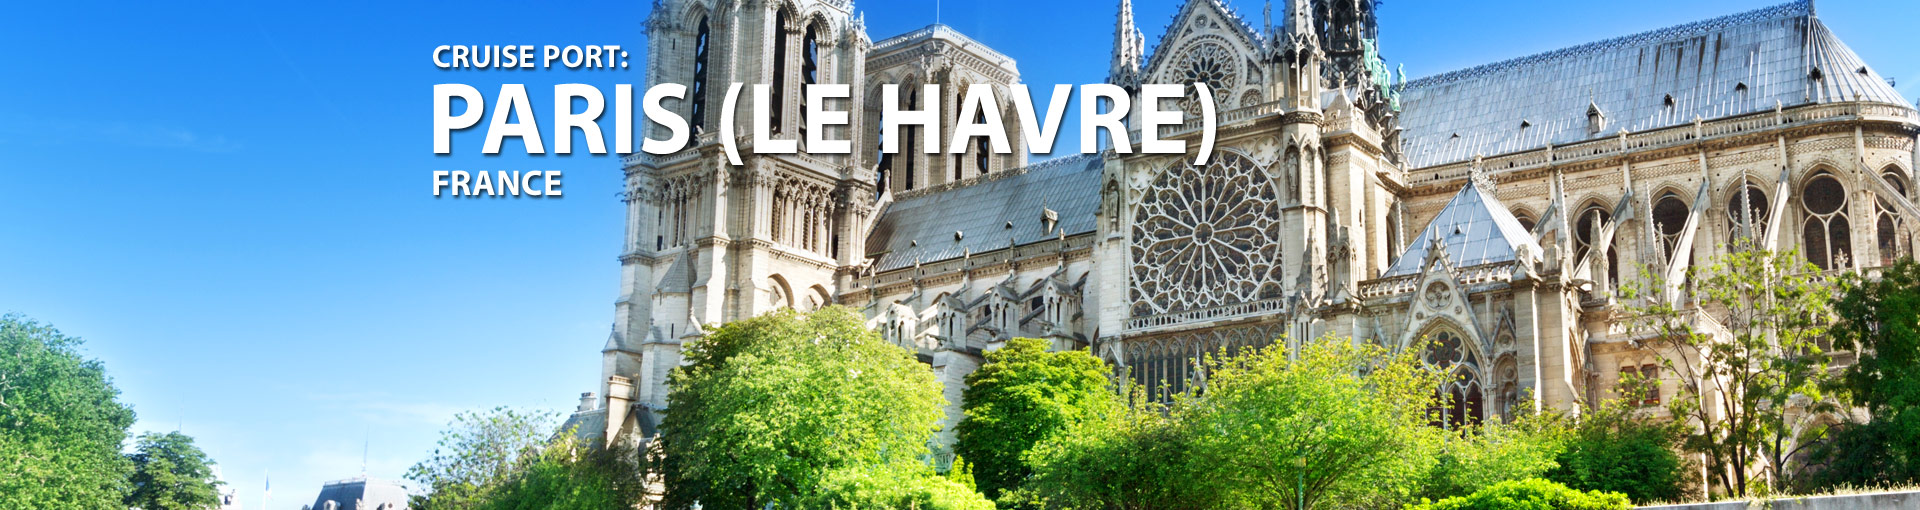 Cruises from Le Havre, Paris, France